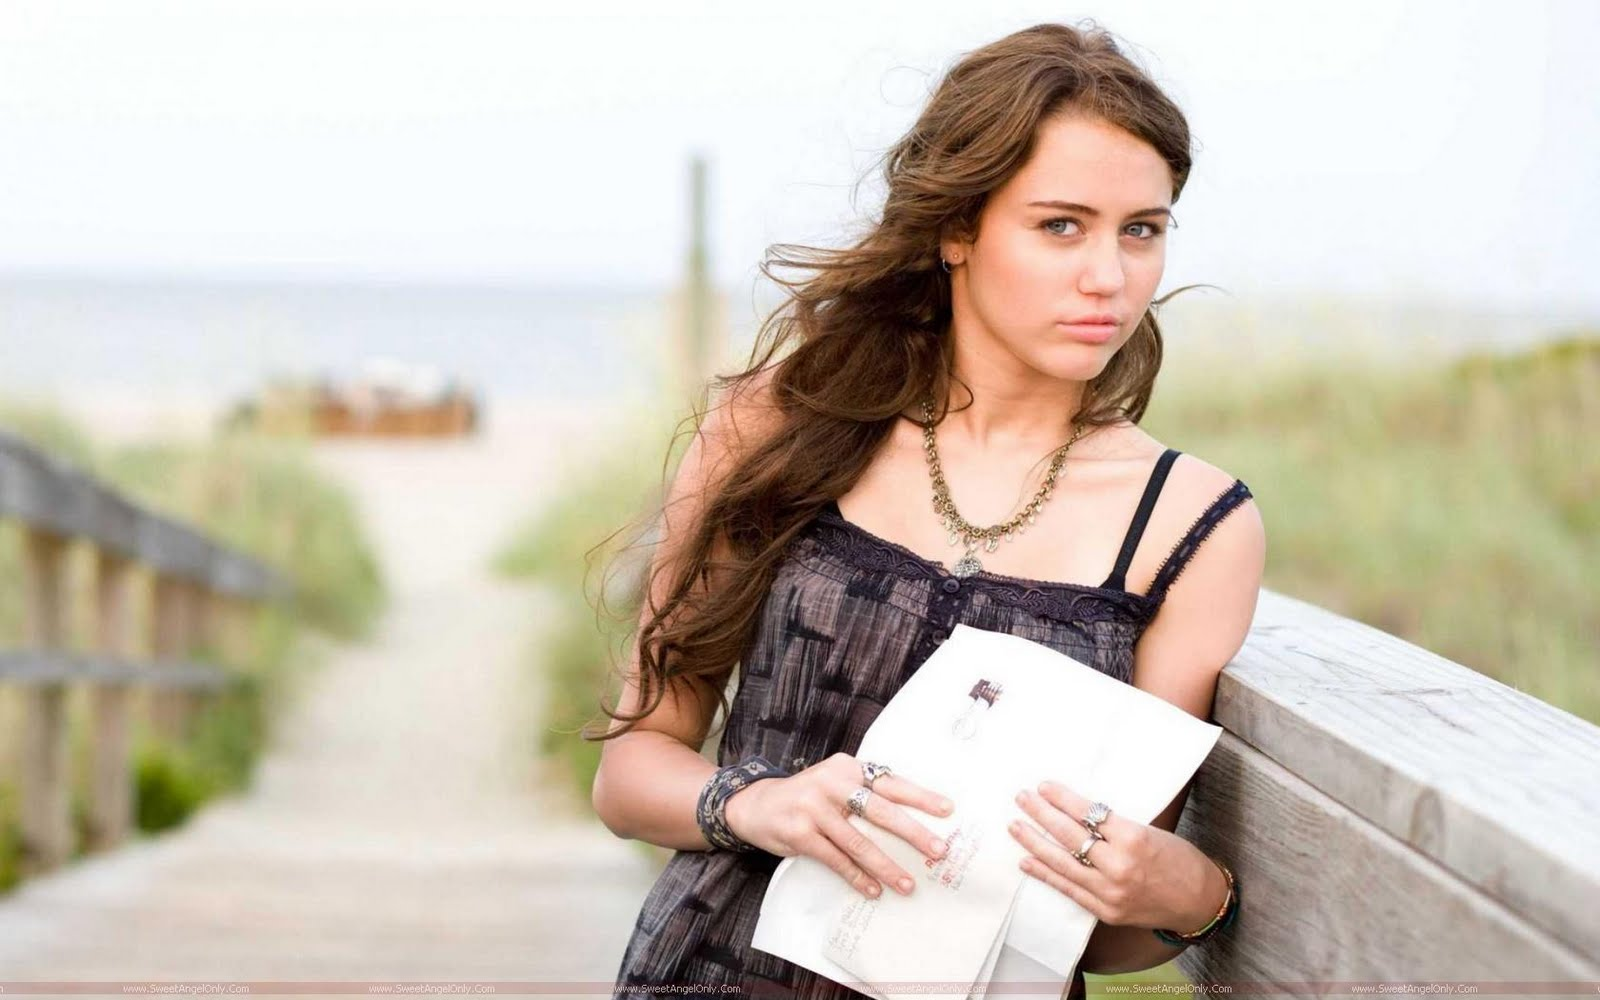 http://2.bp.blogspot.com/-SF6ytdsJkI0/TjgB6ZO6iRI/AAAAAAAAID4/Rov2BeLe4hI/s1600/miley_cyrus_in_the_last_song_movie-1680x1050.jpg